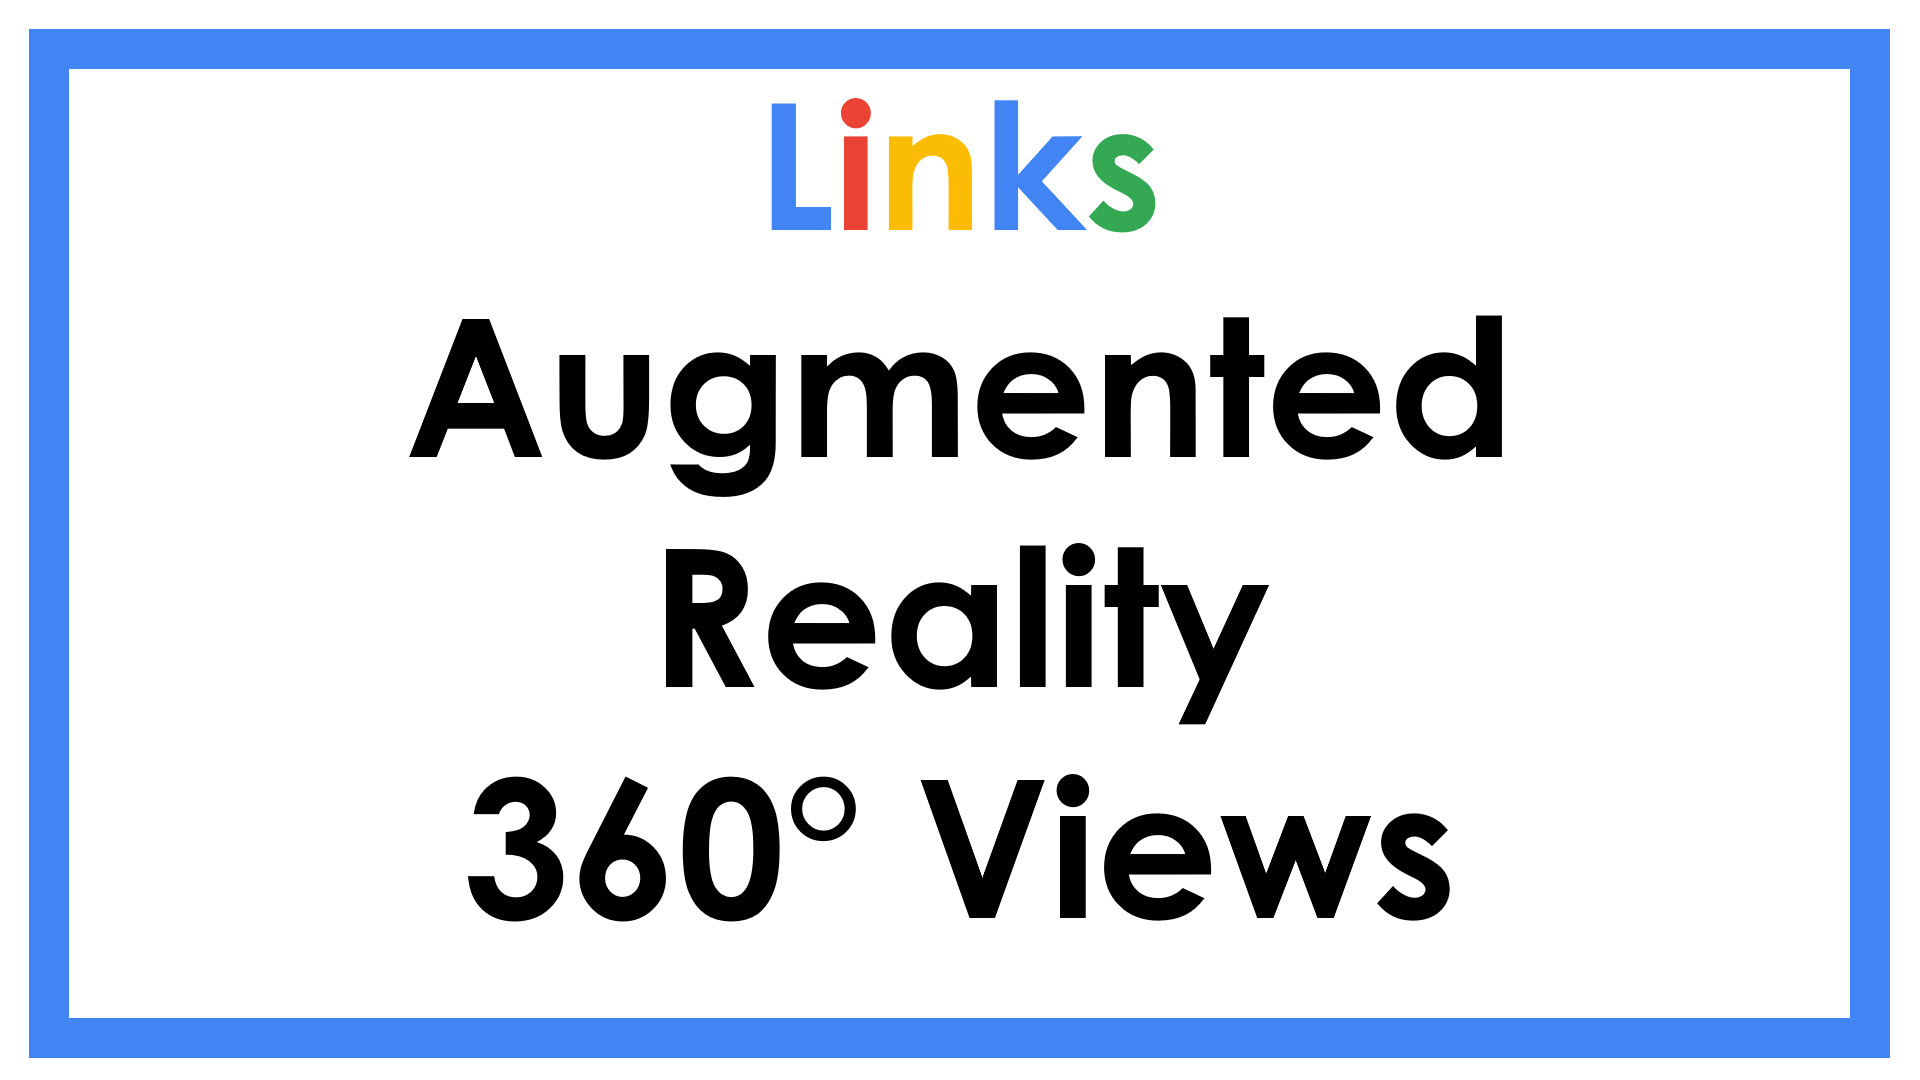 Links Augemented Reality 360 Views